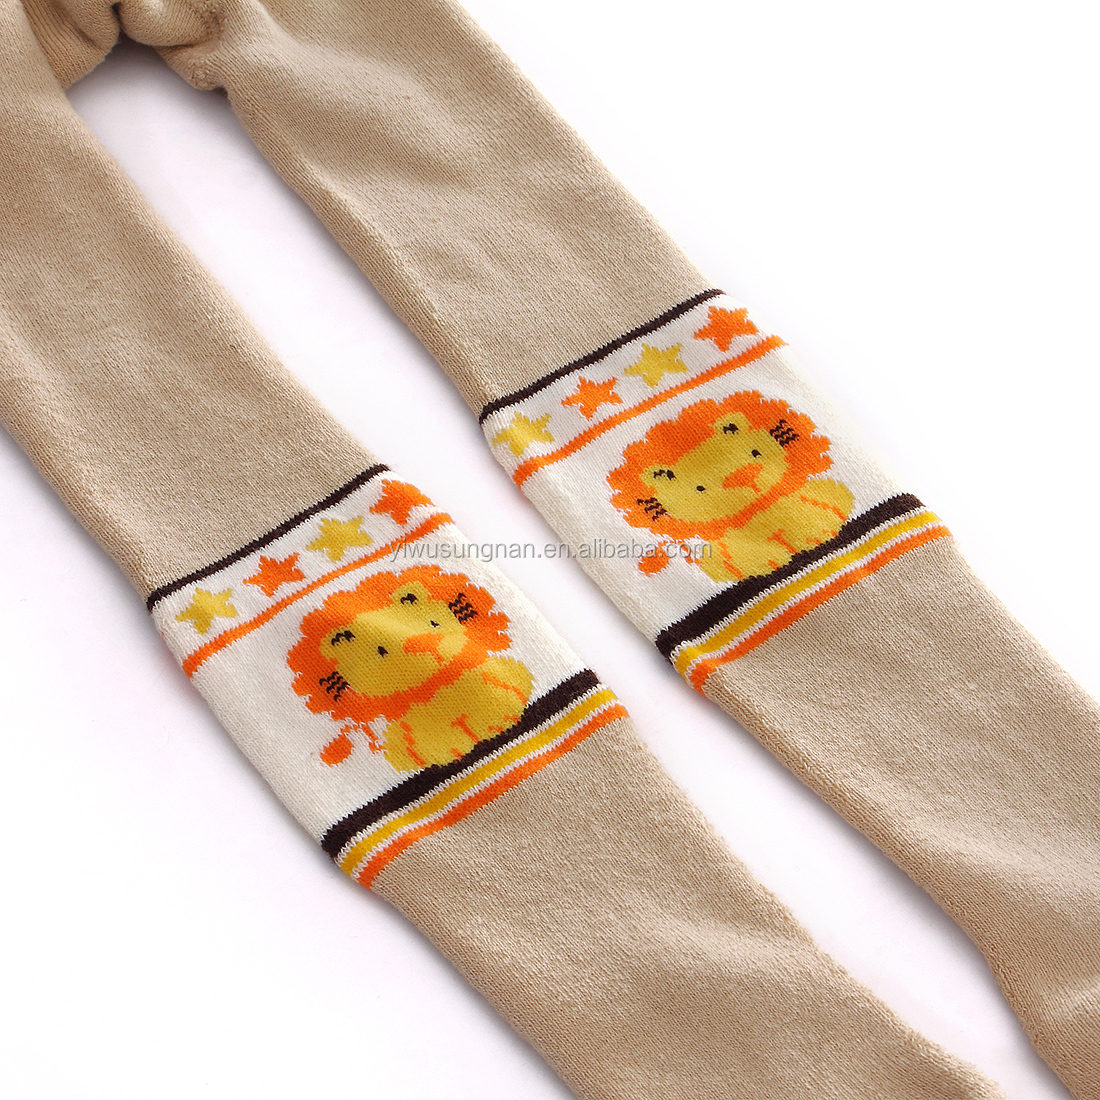 Thick terry loop hosiery baby boys and girls little children fabric textile pantyhose